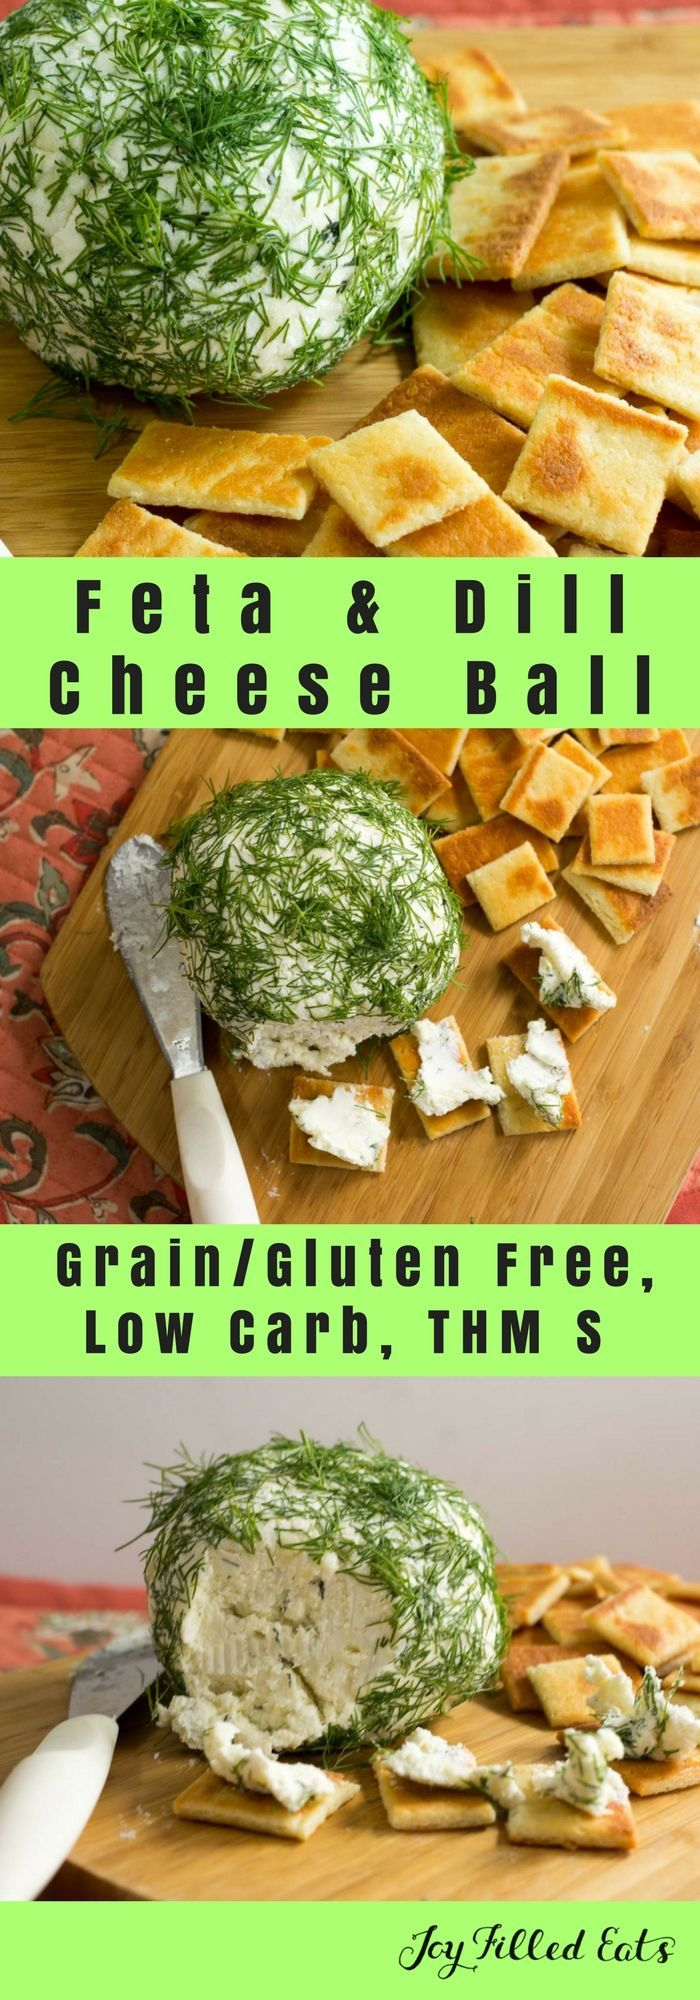 Feta & Dill Cheese Ball - Low Carb, Grain & Gluten Free, THM S - Five ingredients, five-minute prep.  -This is a great warm weather snack or appetizer. With five ingredients and a five-minute prep it comes together in no time. via @joyfilledeats